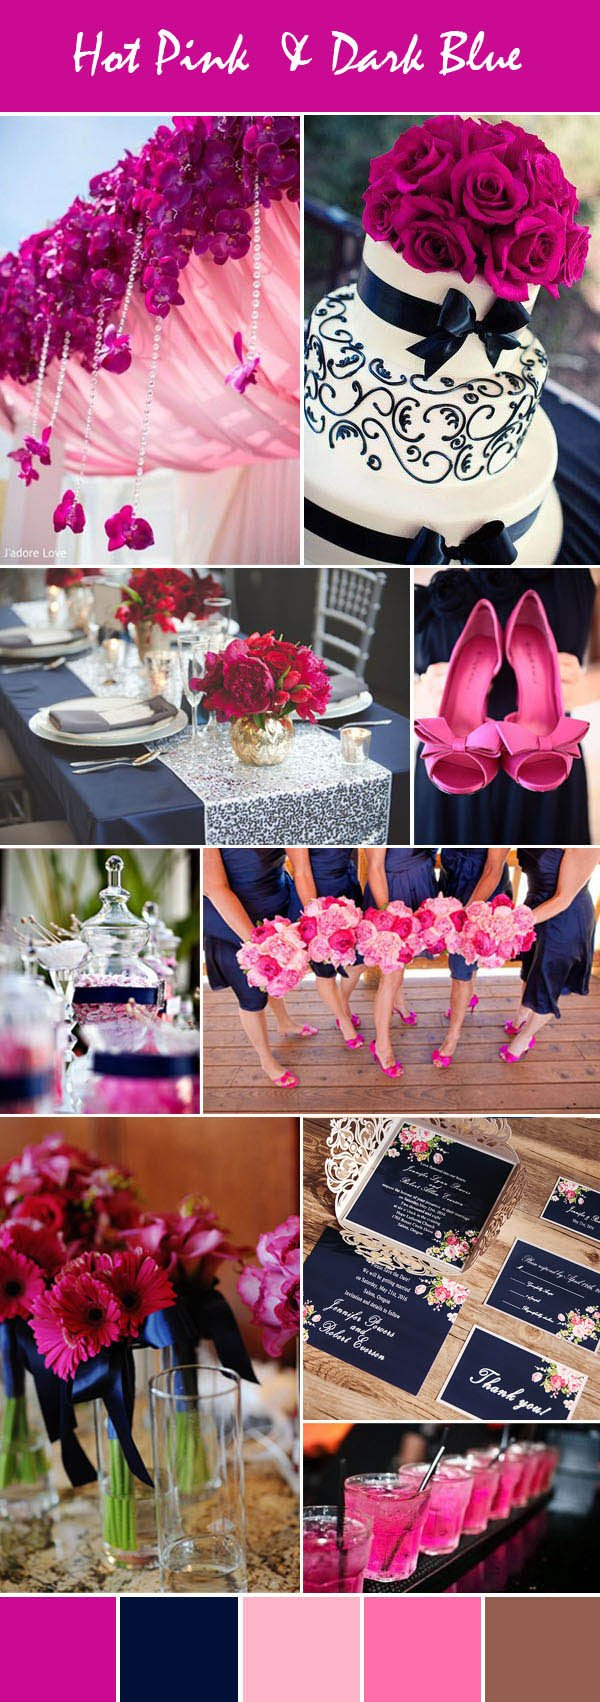 Pink and Blue Wedding Decor Elegant Stunning Bright Pink Wedding Color Ideas with Invitations for Spring & Summer